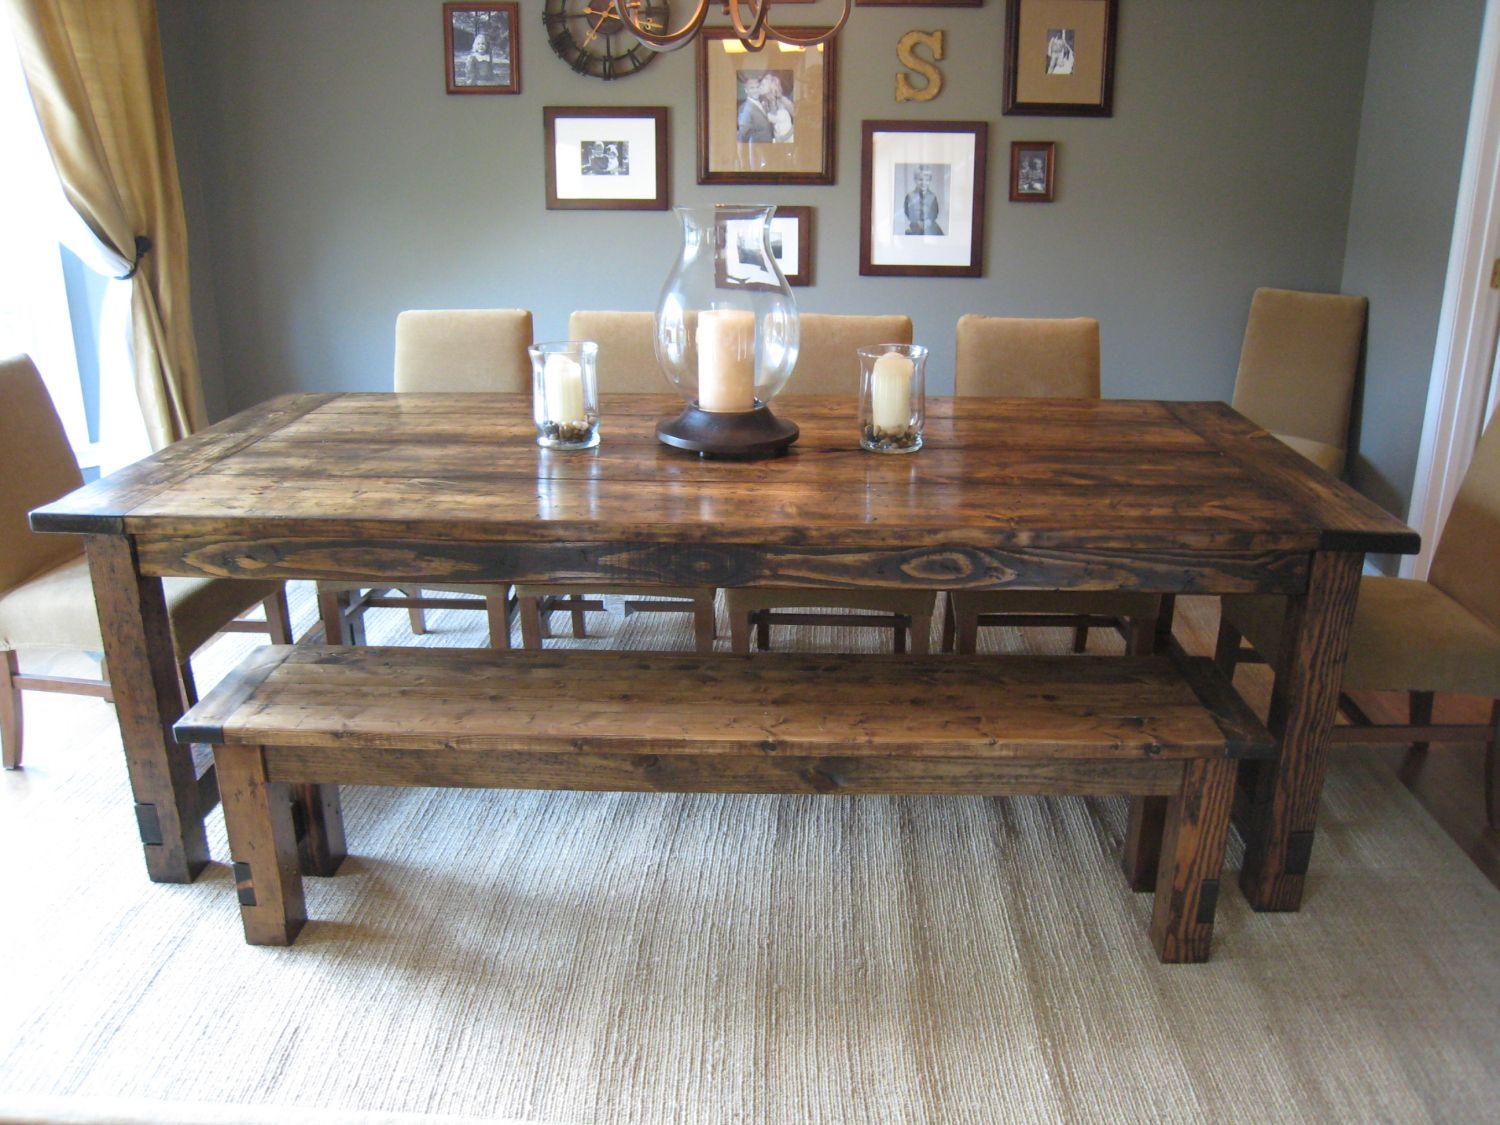 Country Style Kitchen Table with Bench - Kitchen Backsplash Design ...